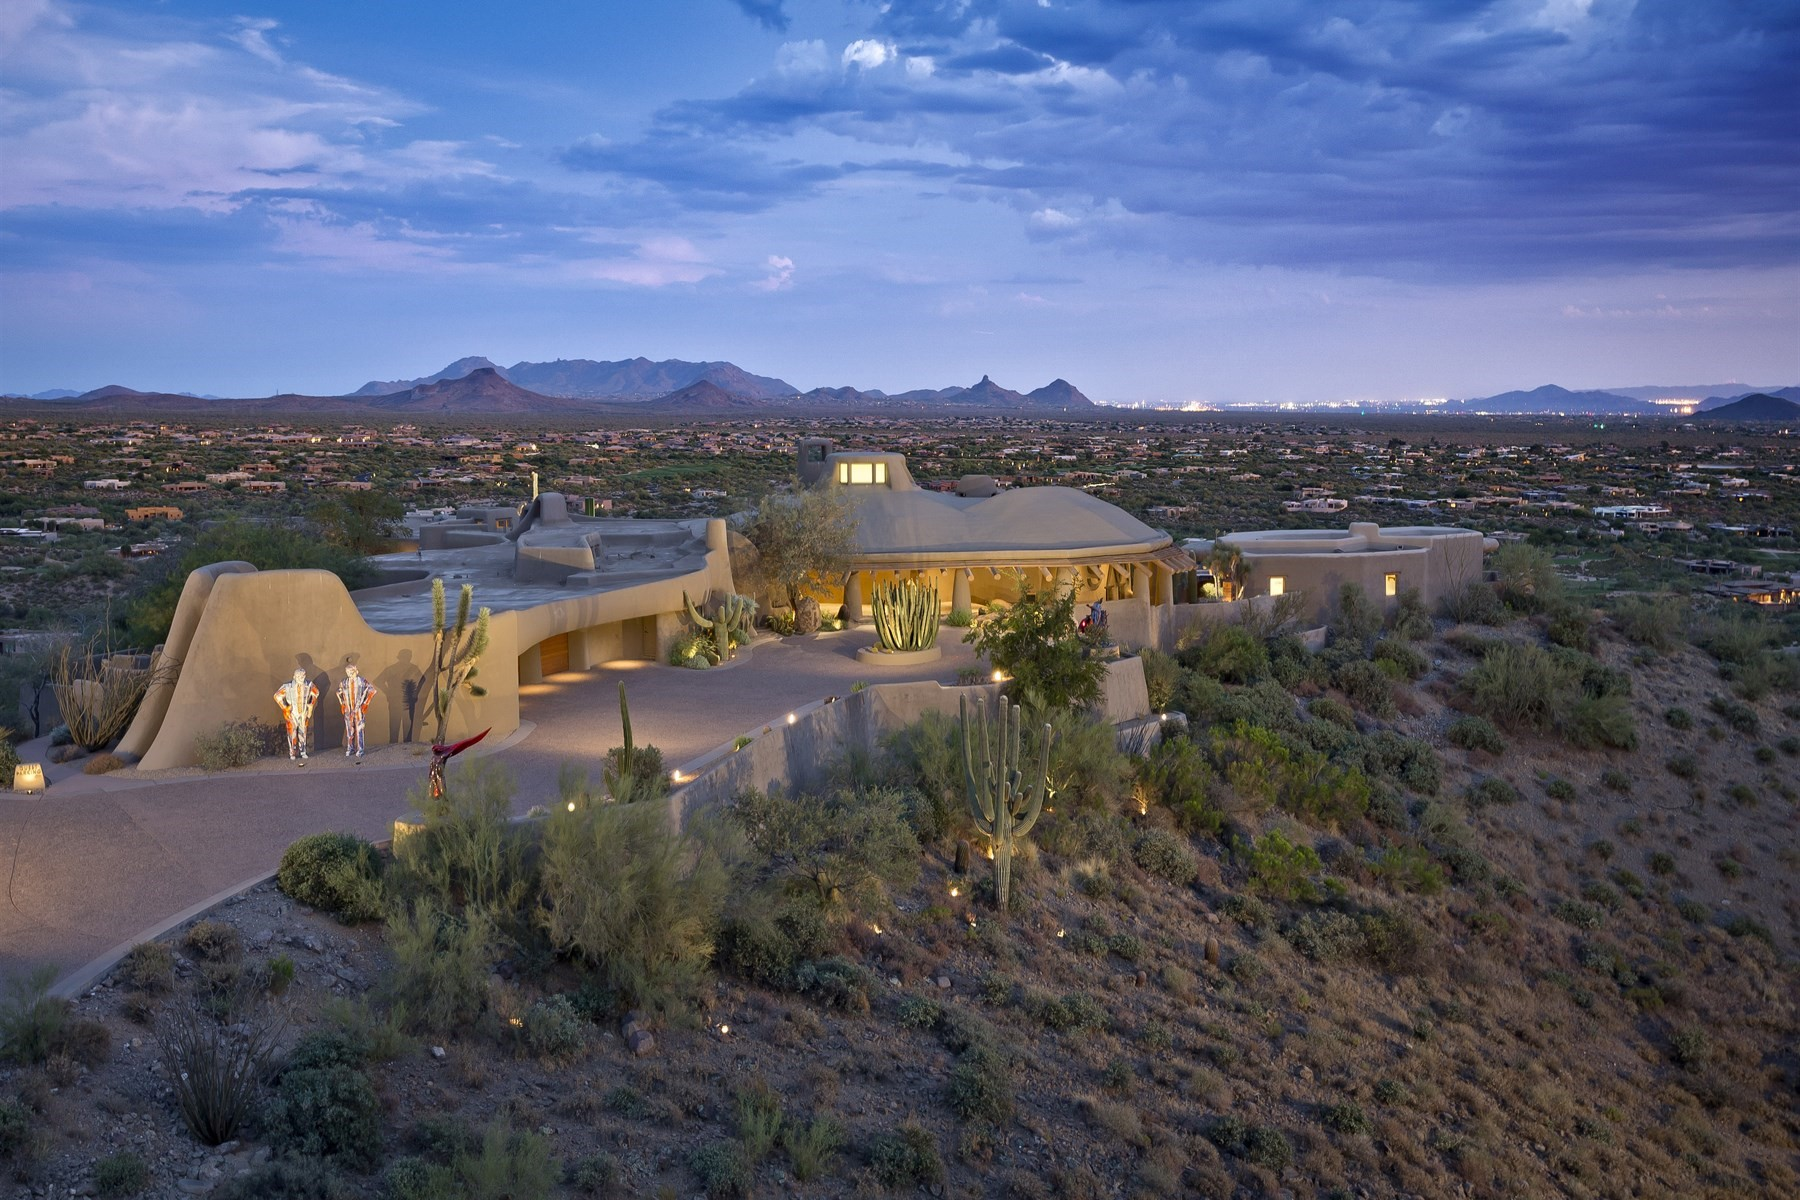 Moradia para Venda às One-of-a-kind 15-acre estate that towers over the valley 39029 N Alister McKenzie Dr Scottsdale, Arizona, 85262 Estados Unidos